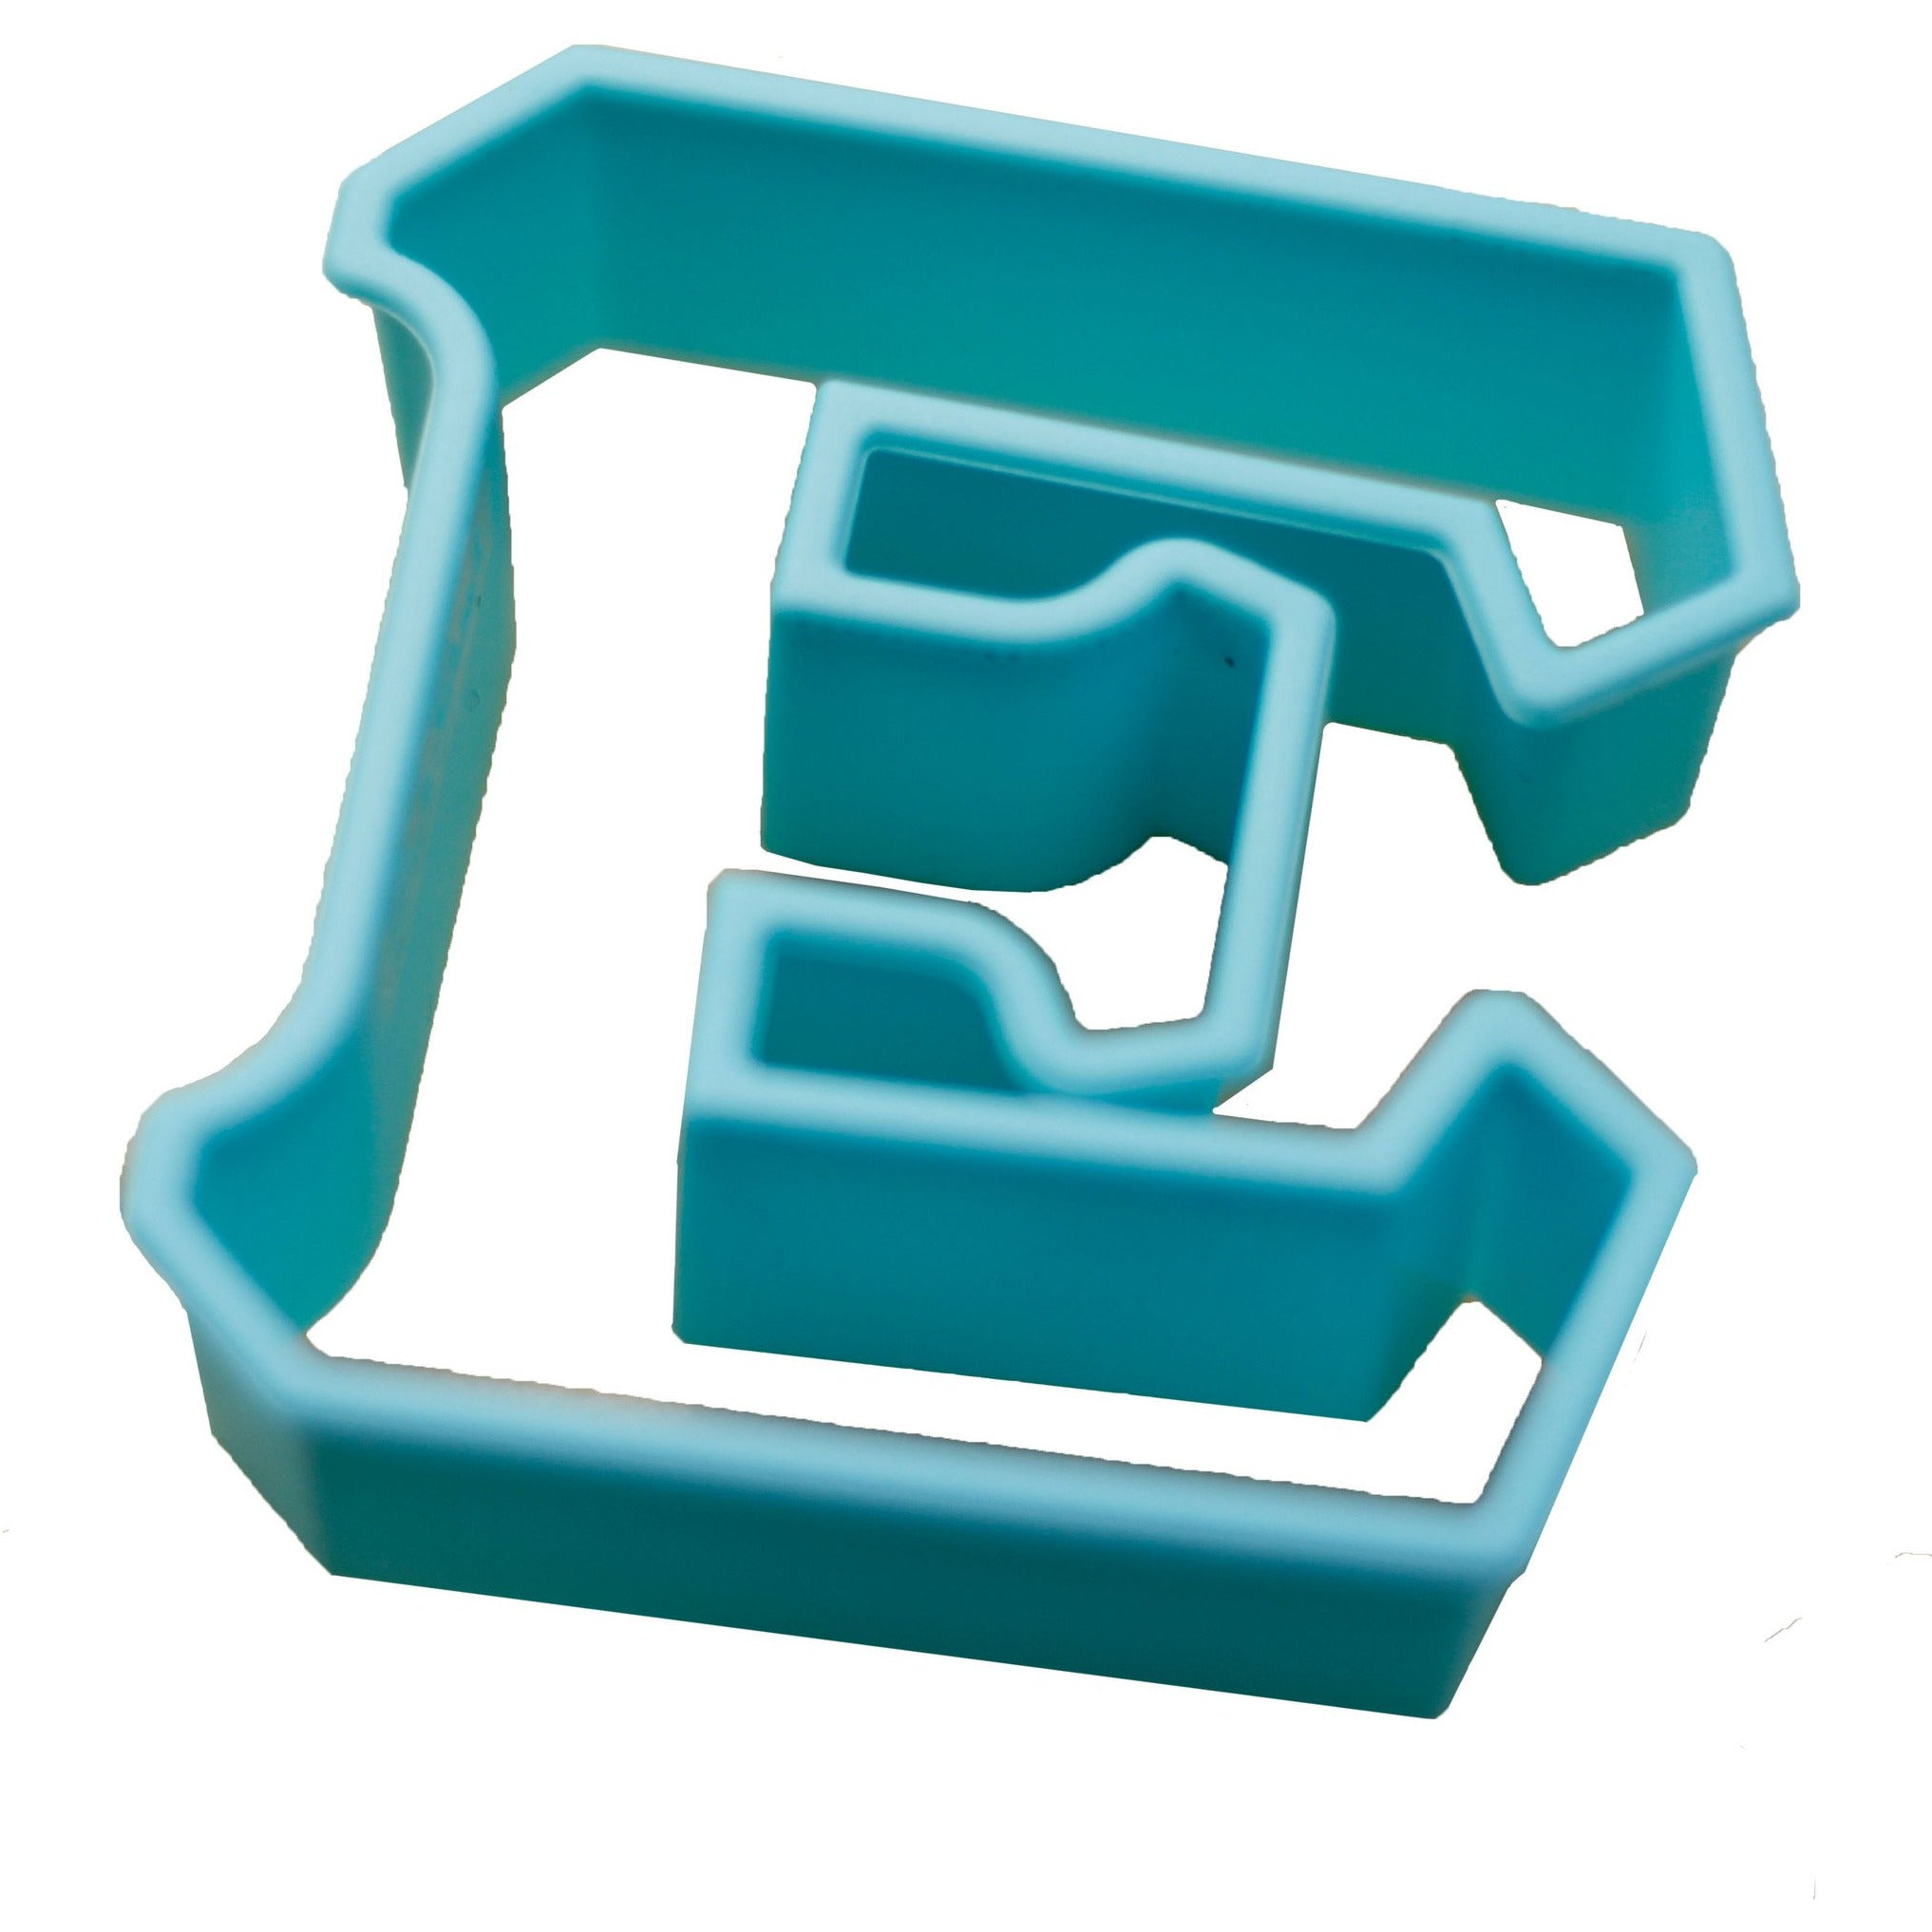 LiveGreek® Greek Alphabet Cookie Cutters - Epsilson shape - #LiveGreek #ScottKaminski #MiaKaminski #Panhellenic #sororitysupplies #bigsislilsis #students #college #rush #graduationgifts #sororityhouse #fraternal #fraternity #cookiecutters #artstencil #GreekAlphabet - #LiveGreek #ScottKaminski #MiaKaminski #Panhellenic #sororitysupplies #bigsislilsis #students #college #rush #graduationgifts #sororityhouse #fraternal #fraternity #cookiecutters #artstencil #GreekAlphabet